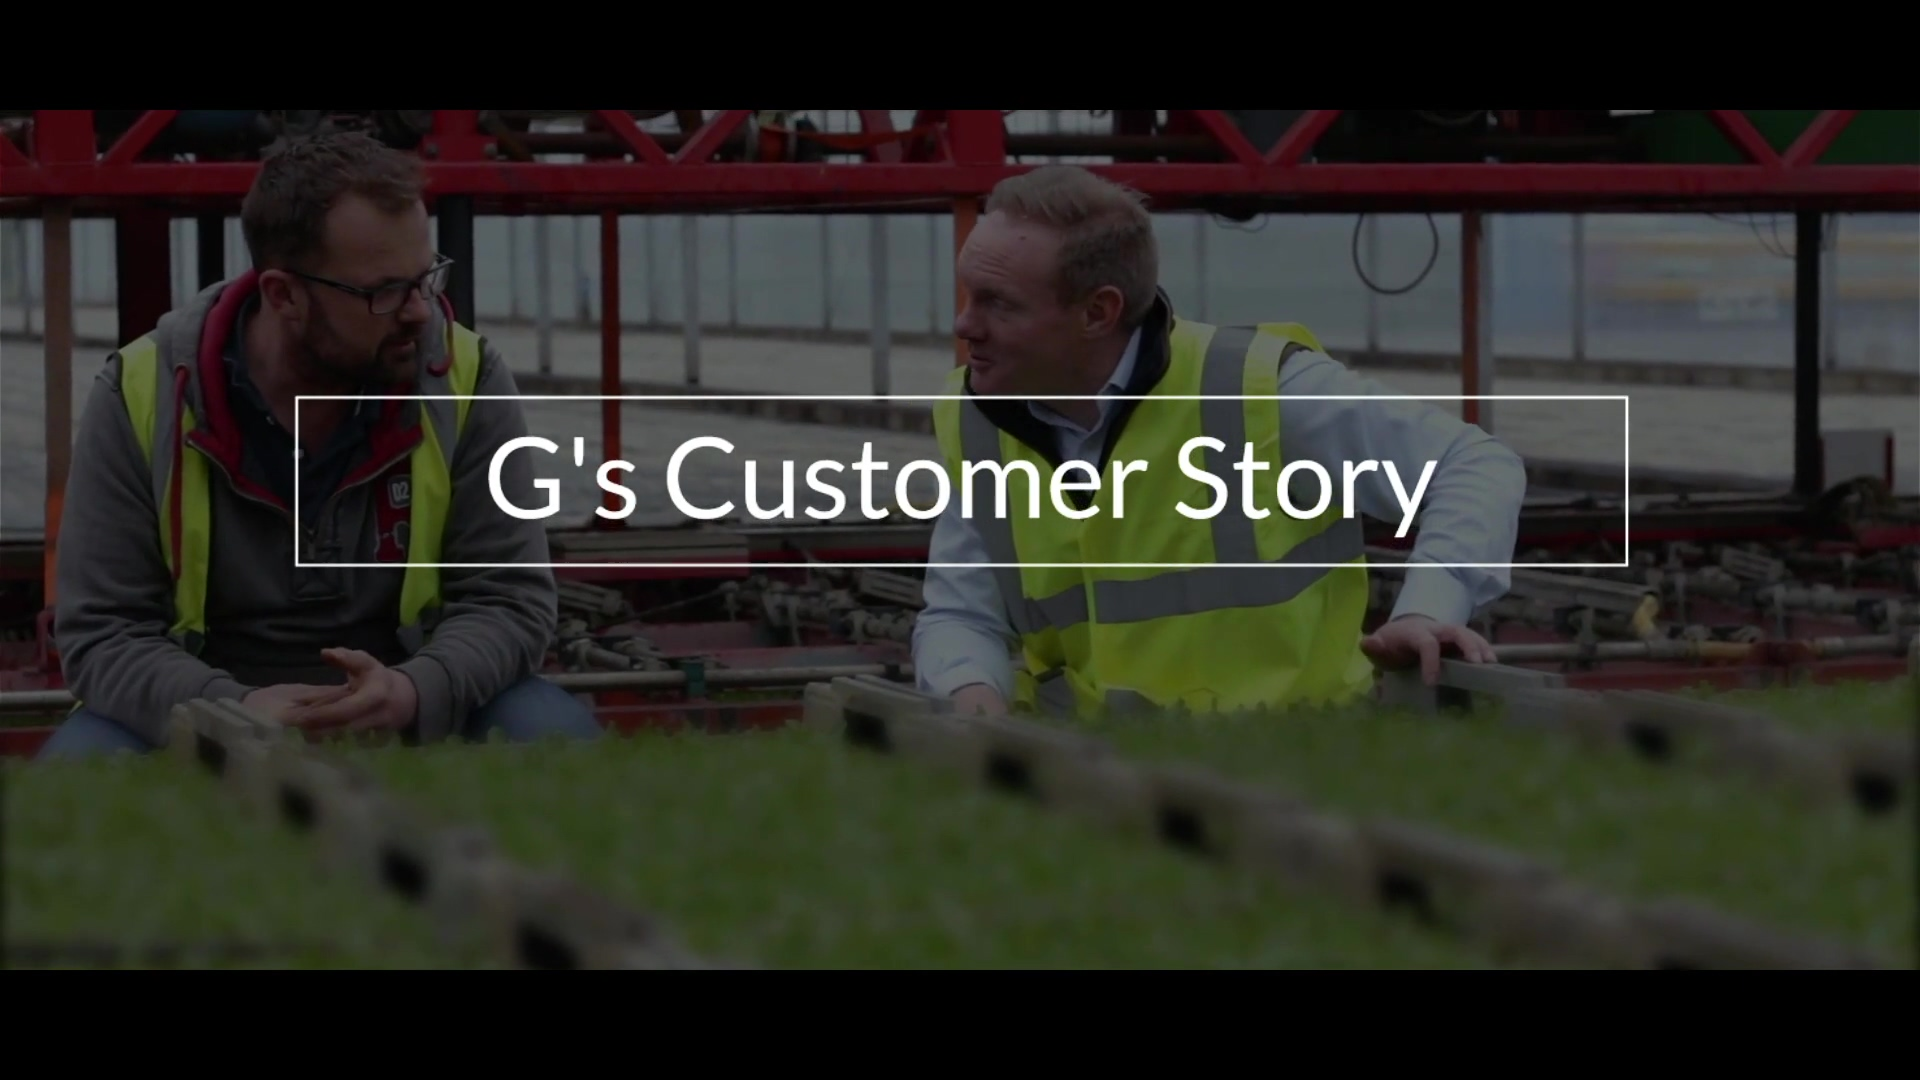 Gs customer story-1